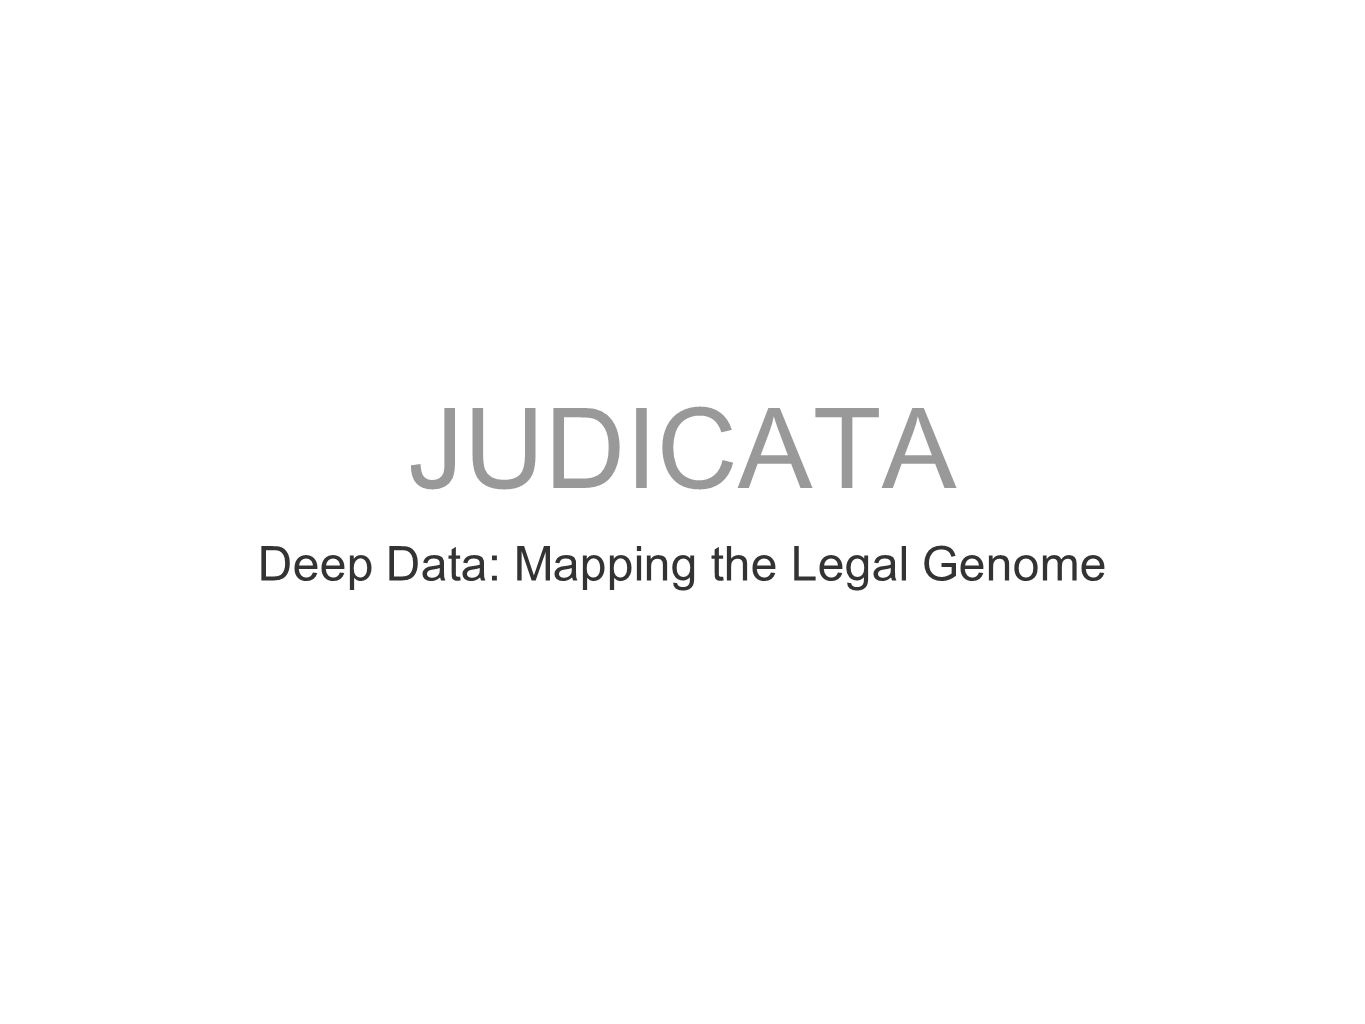 Deep Data: Mapping the Legal Genome